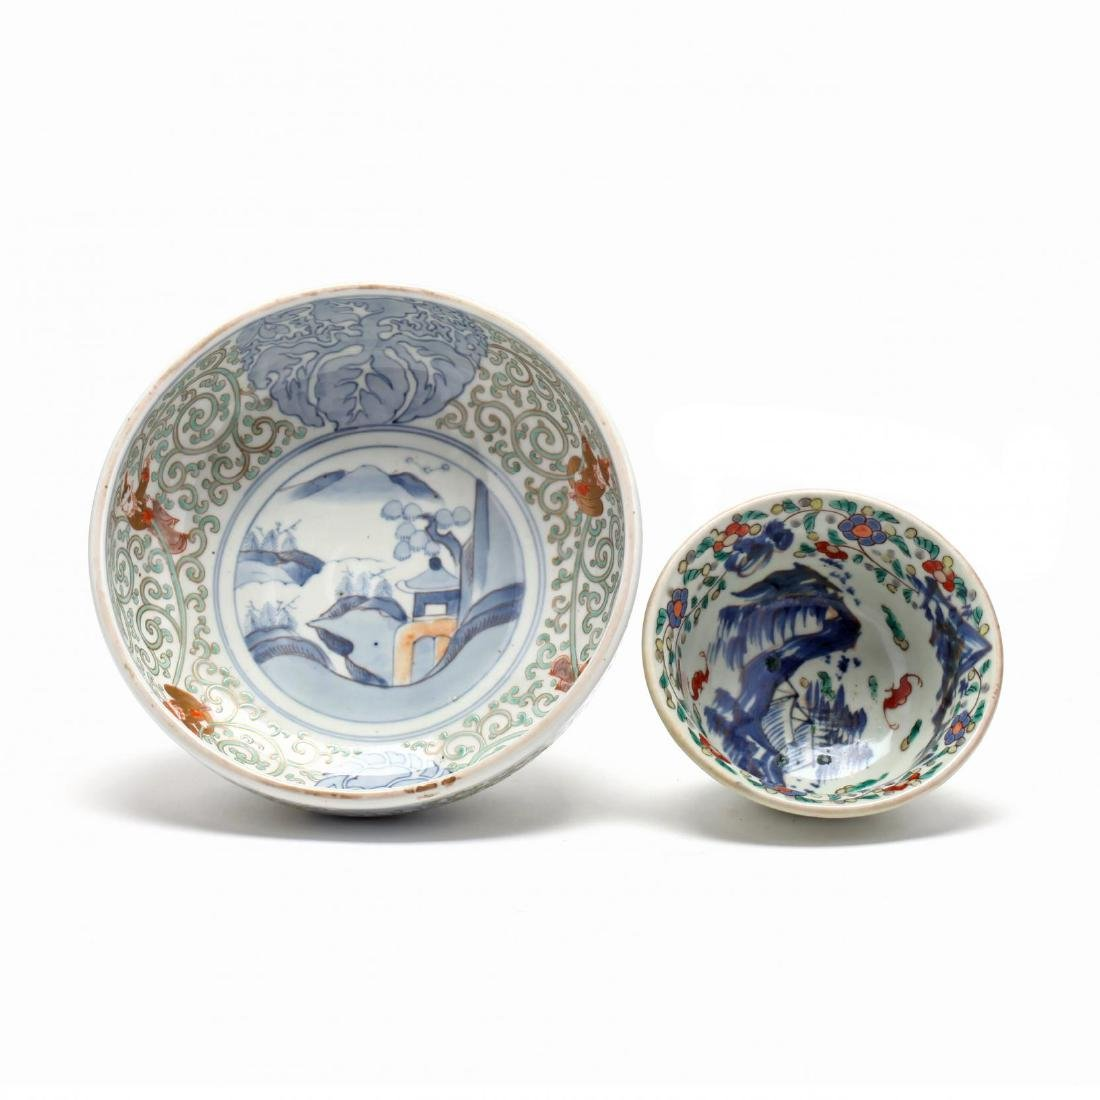 A Group of Chinese Porcelain Tableware - 3